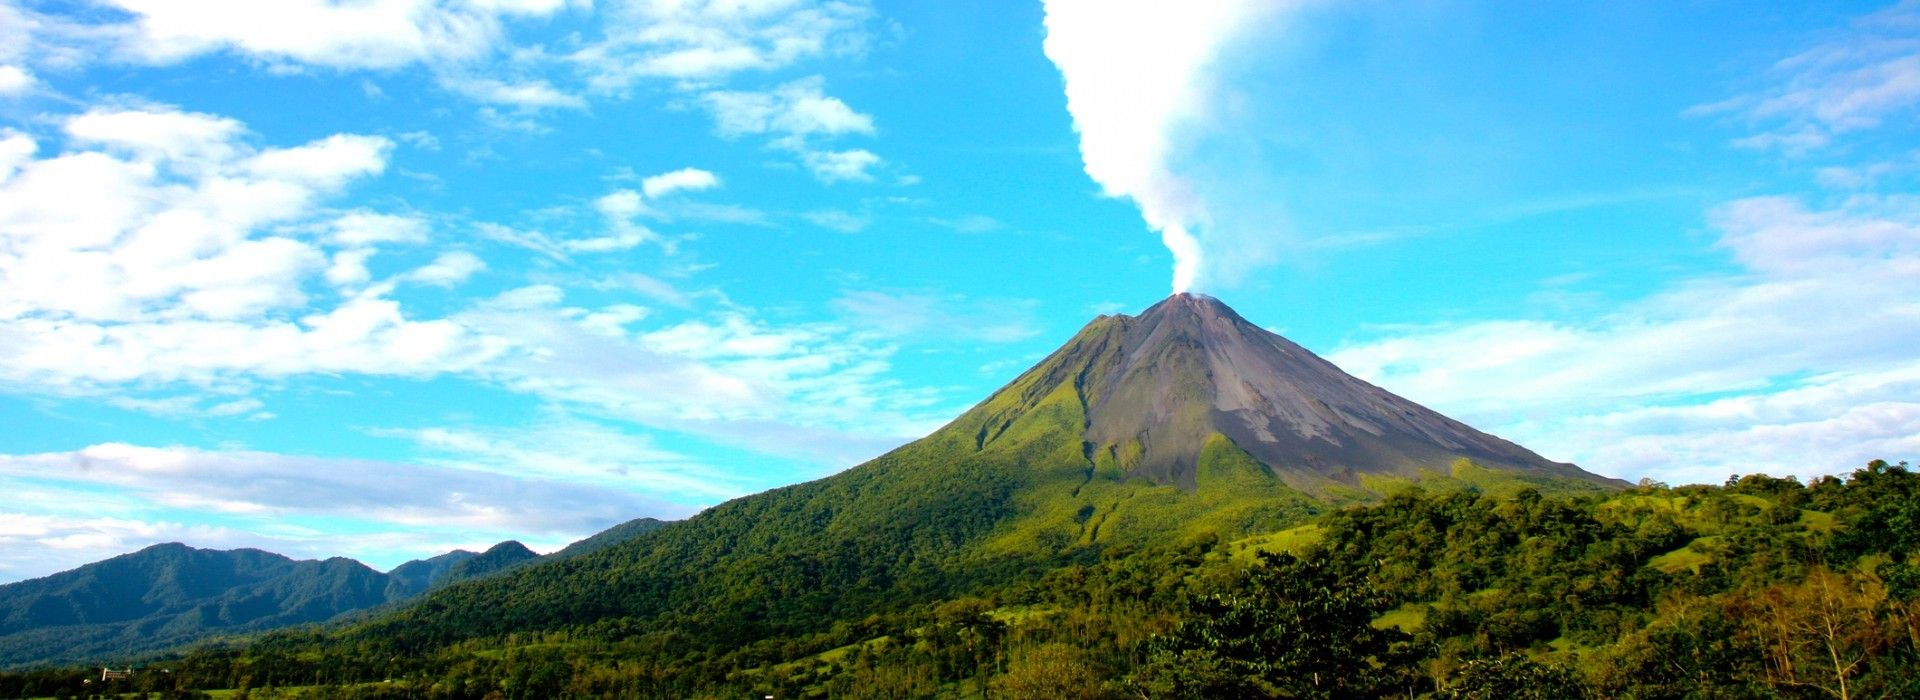 Sightseeing, attractions, culture and history Tours in Costa Rica